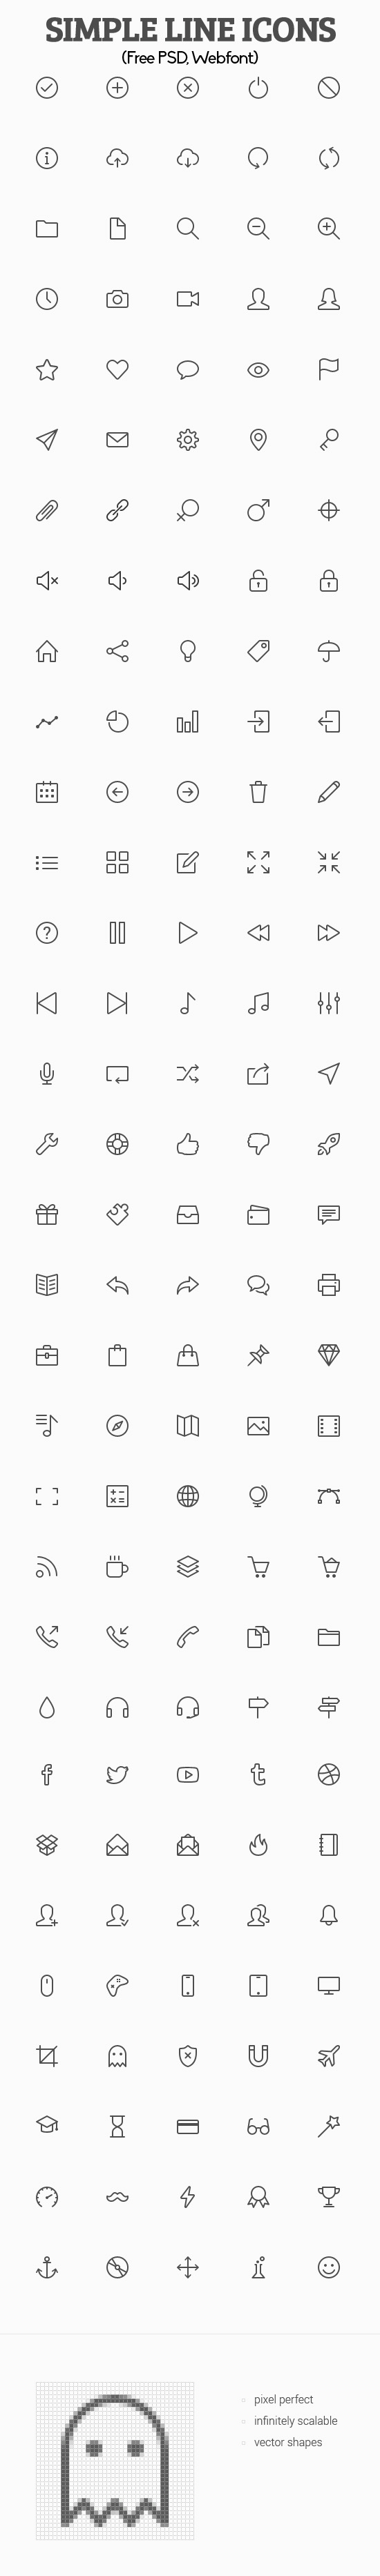 Simple Line Icons (Free PSD, Webfont)